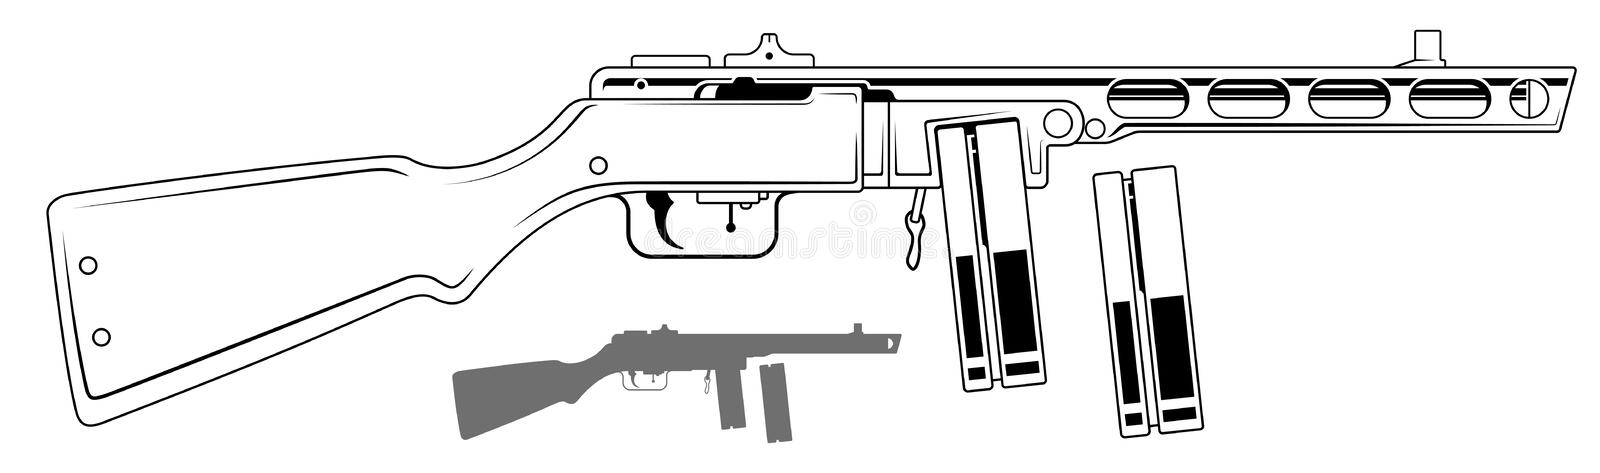 Graphic retro submachine gun with ammo clip vector illustration